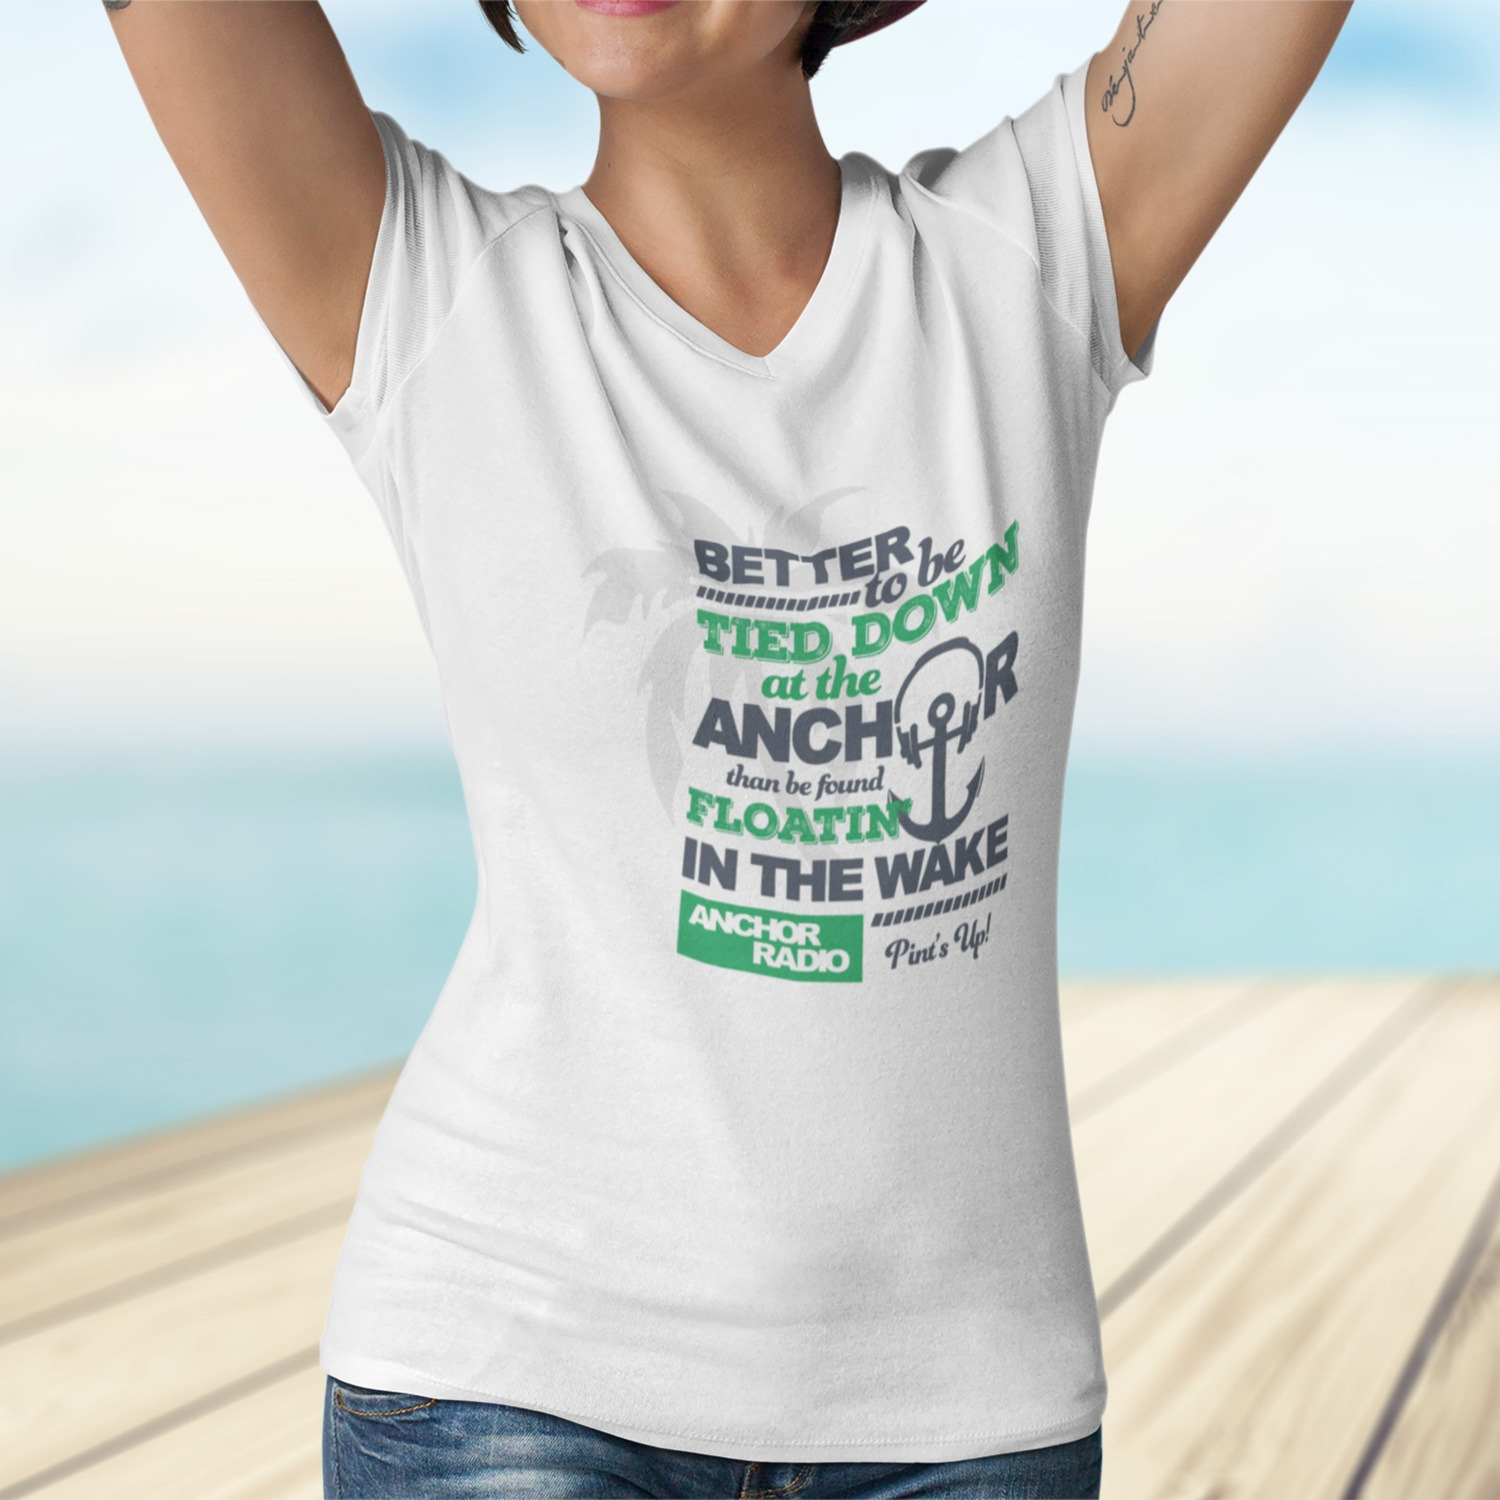 Anchor Radio Tied Down Womens V NeckTee, The Troprock Shop